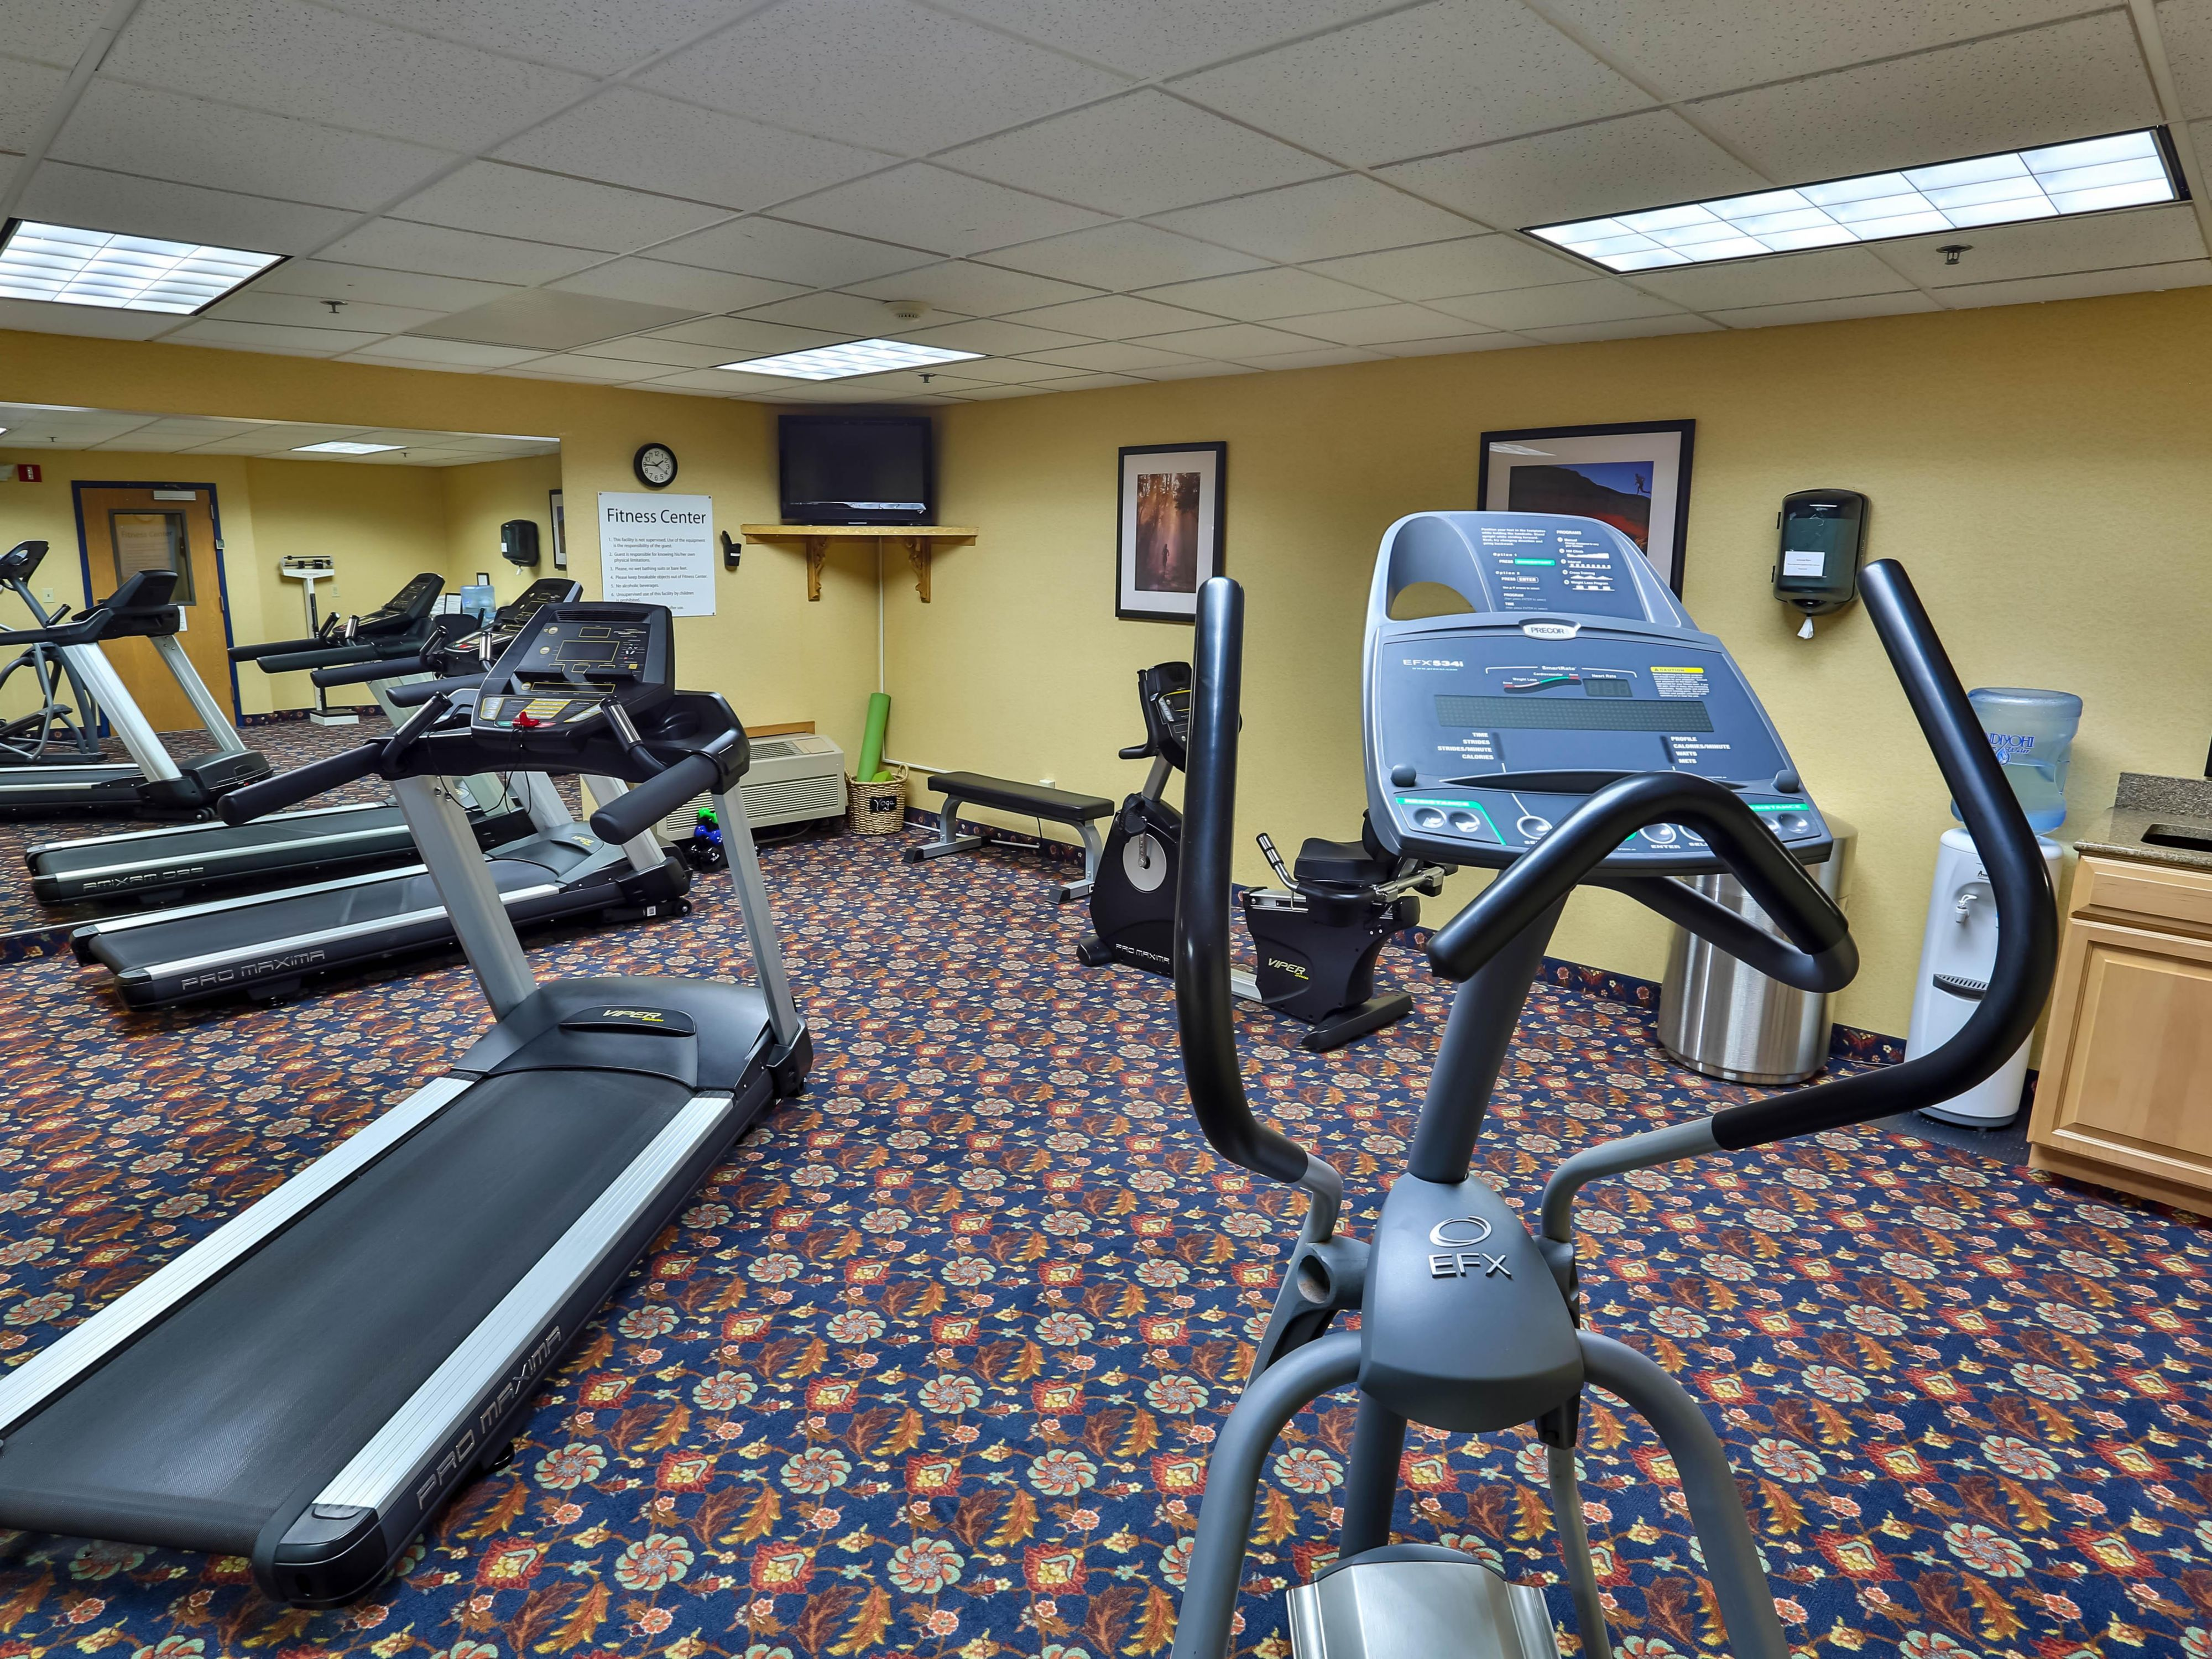 Features 2 Treadmills, an Elliptical Machine and Recumbent Bike